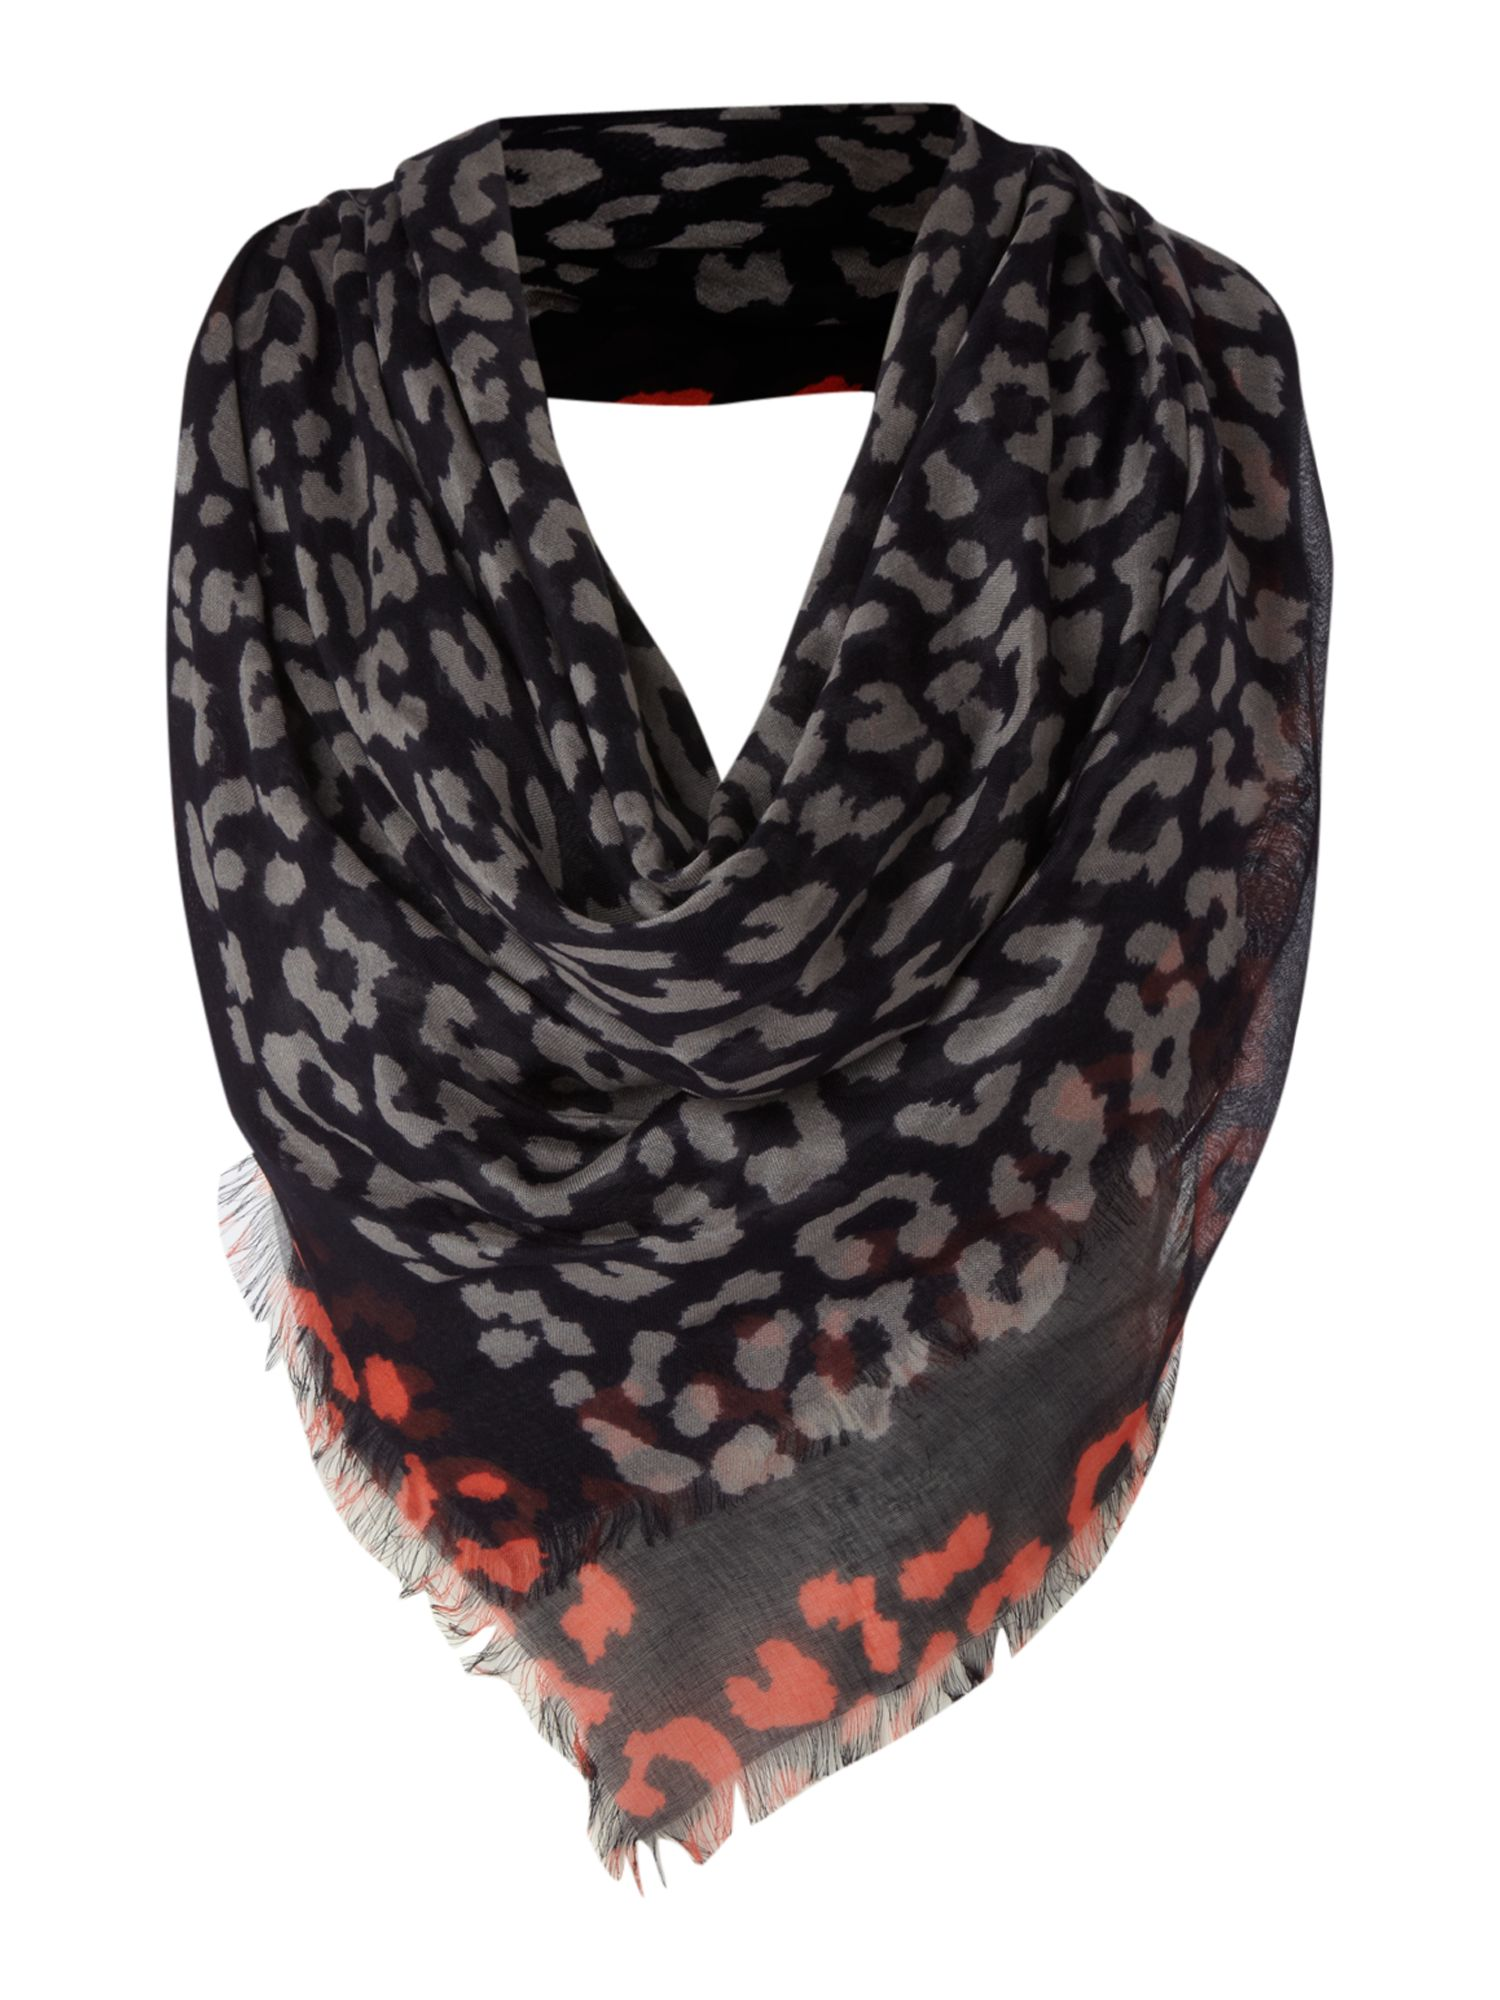 paul smith leopard print square scarf in lyst